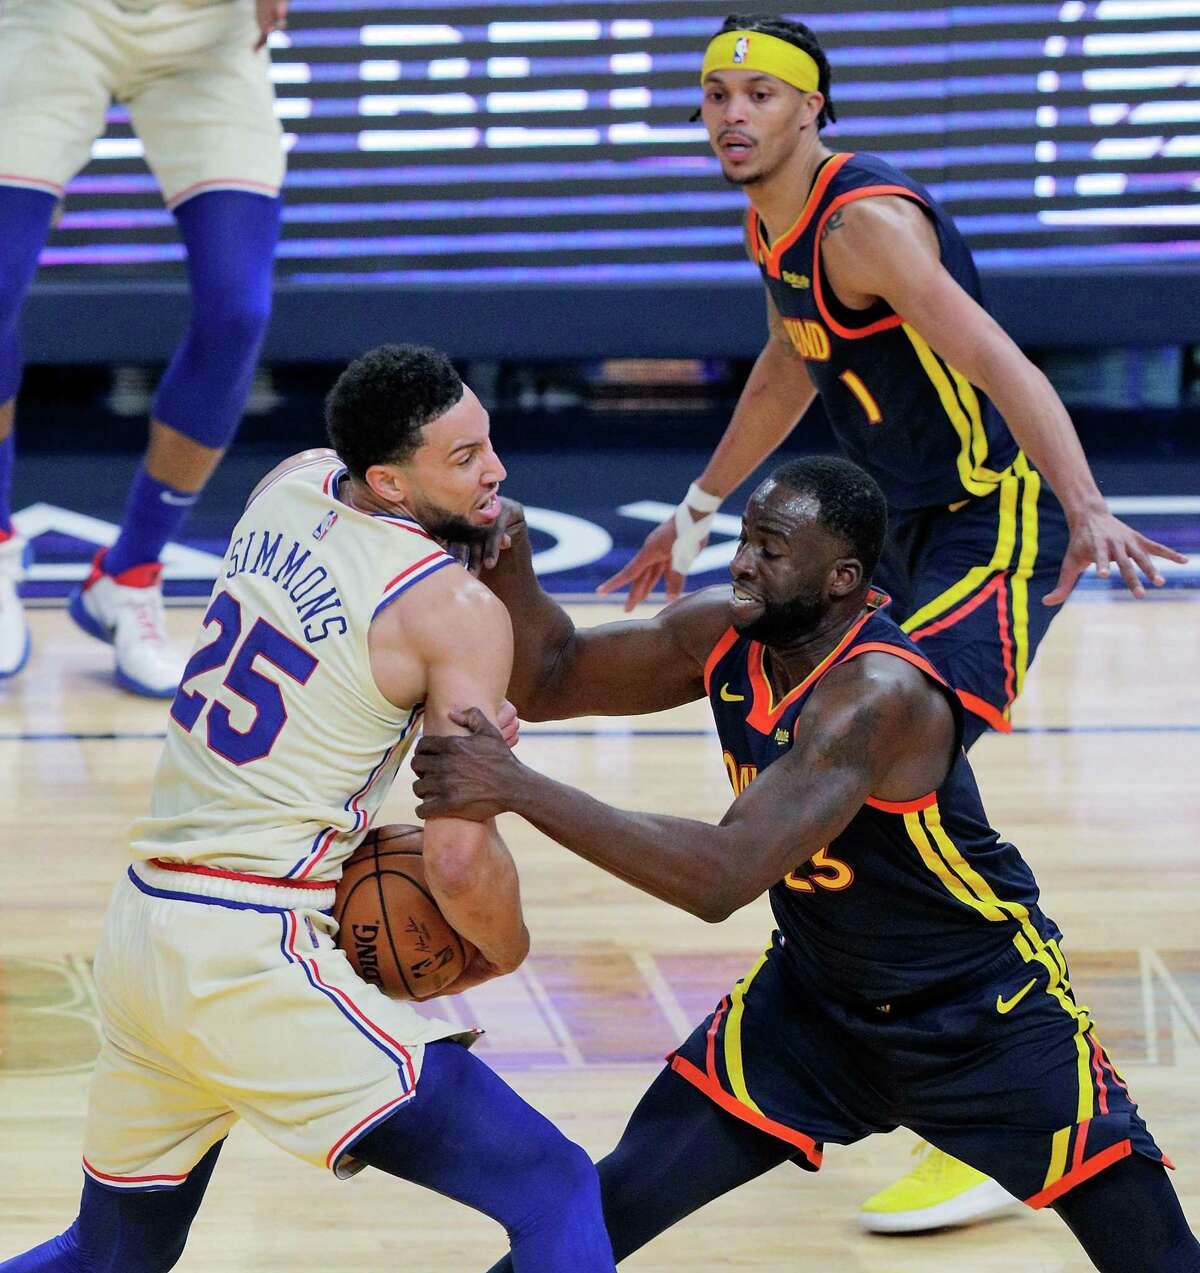 Draymond Green (23) fouls Ben Simmons (25) in the first half as the Golden State Warriors played the Philadelphia 76ers at Chase Center in San Francisco, Calif., on Tuesday, March 23, 2021.